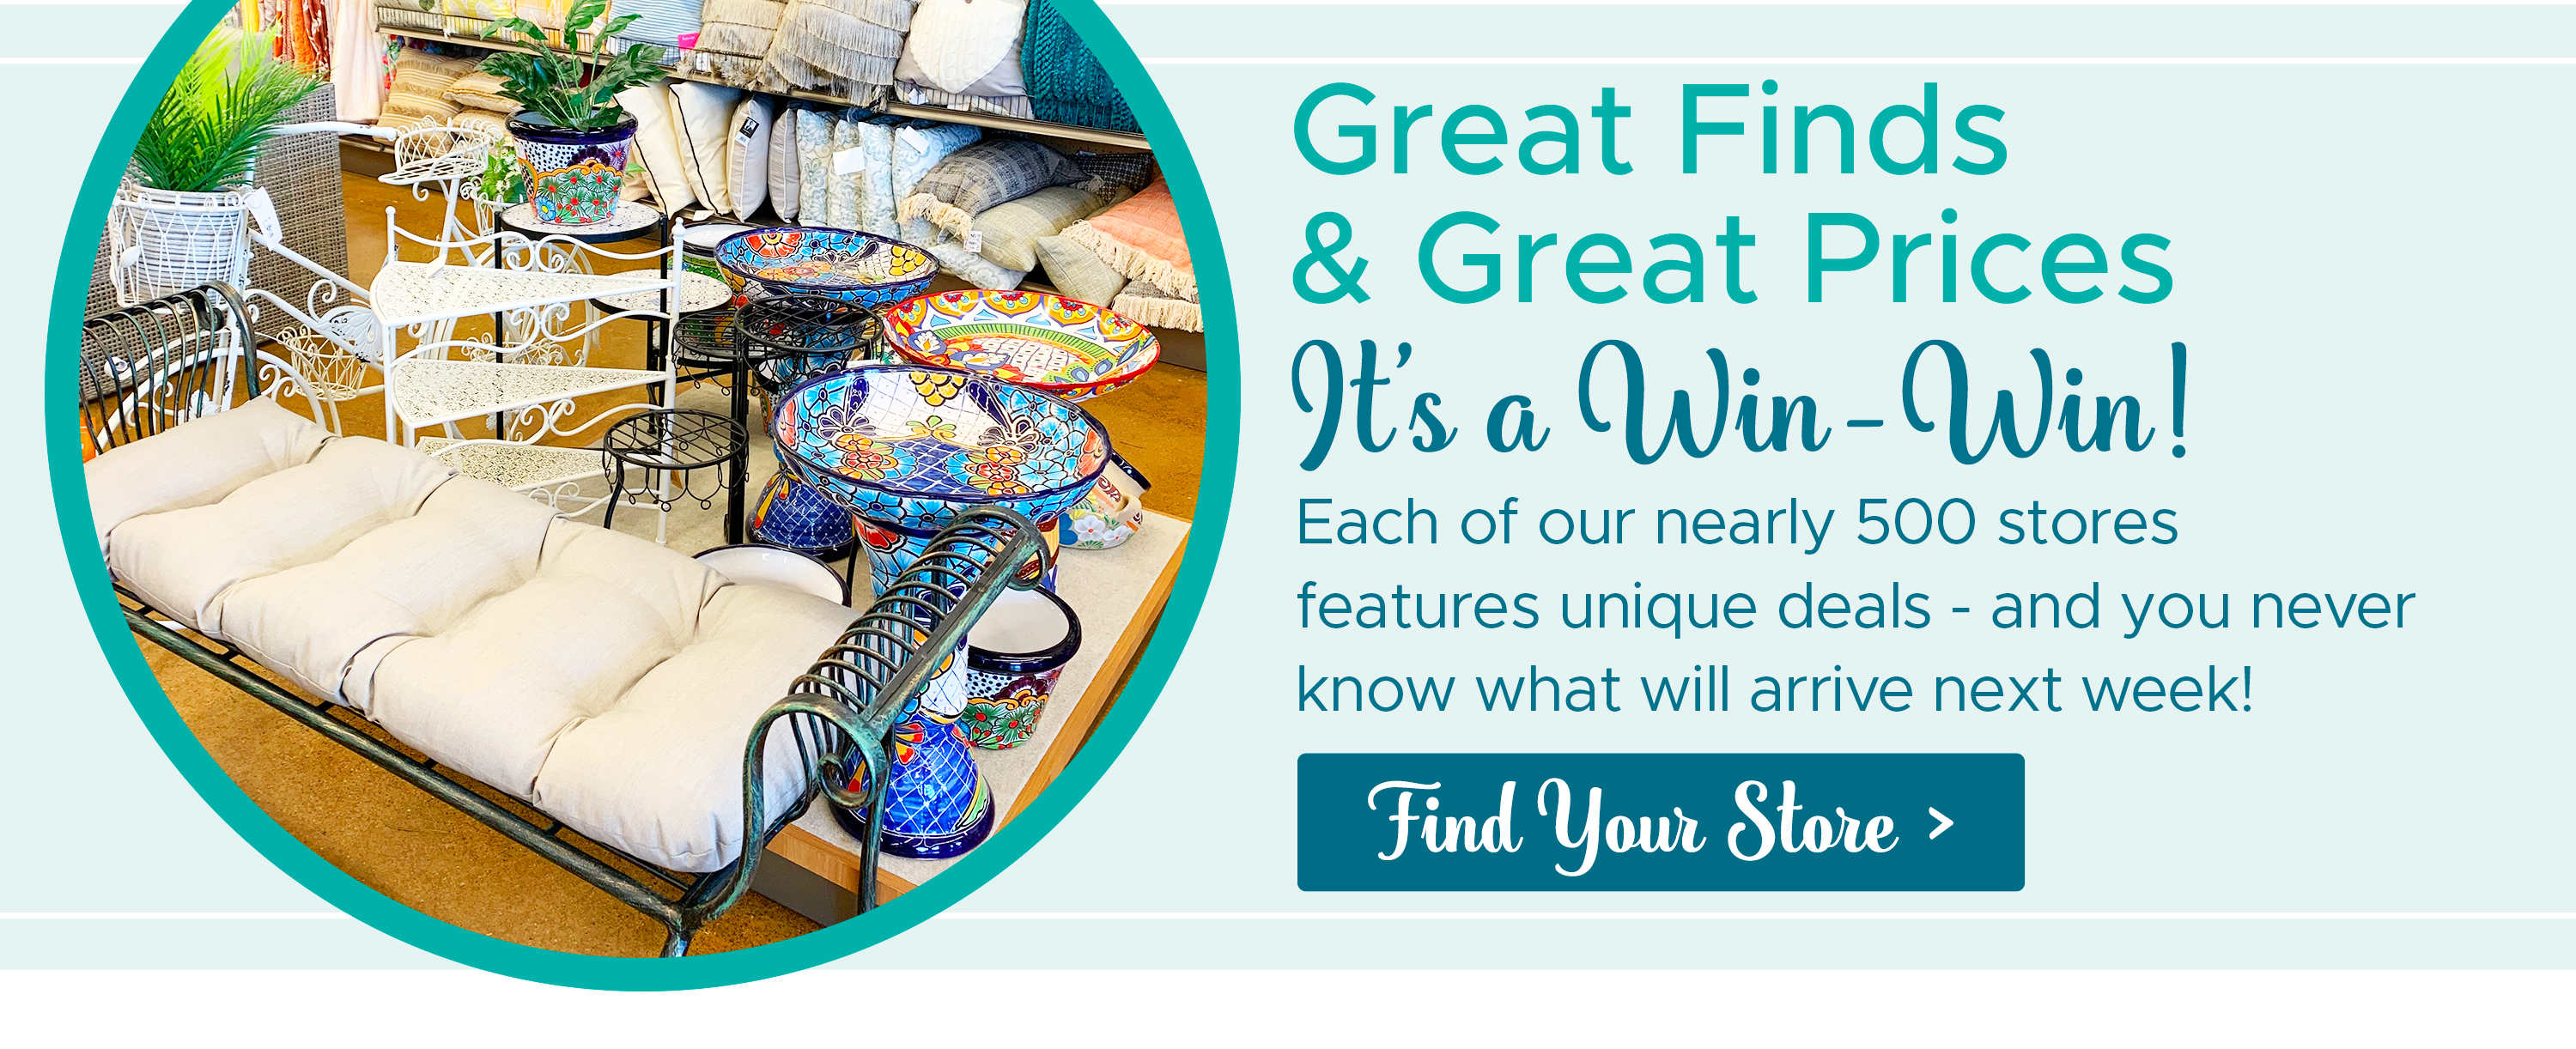 Great Finds & Great Prices, It's a Win-Win! Each of our nearly 500 stores features unique deals - and you never know what you will arrive next week!